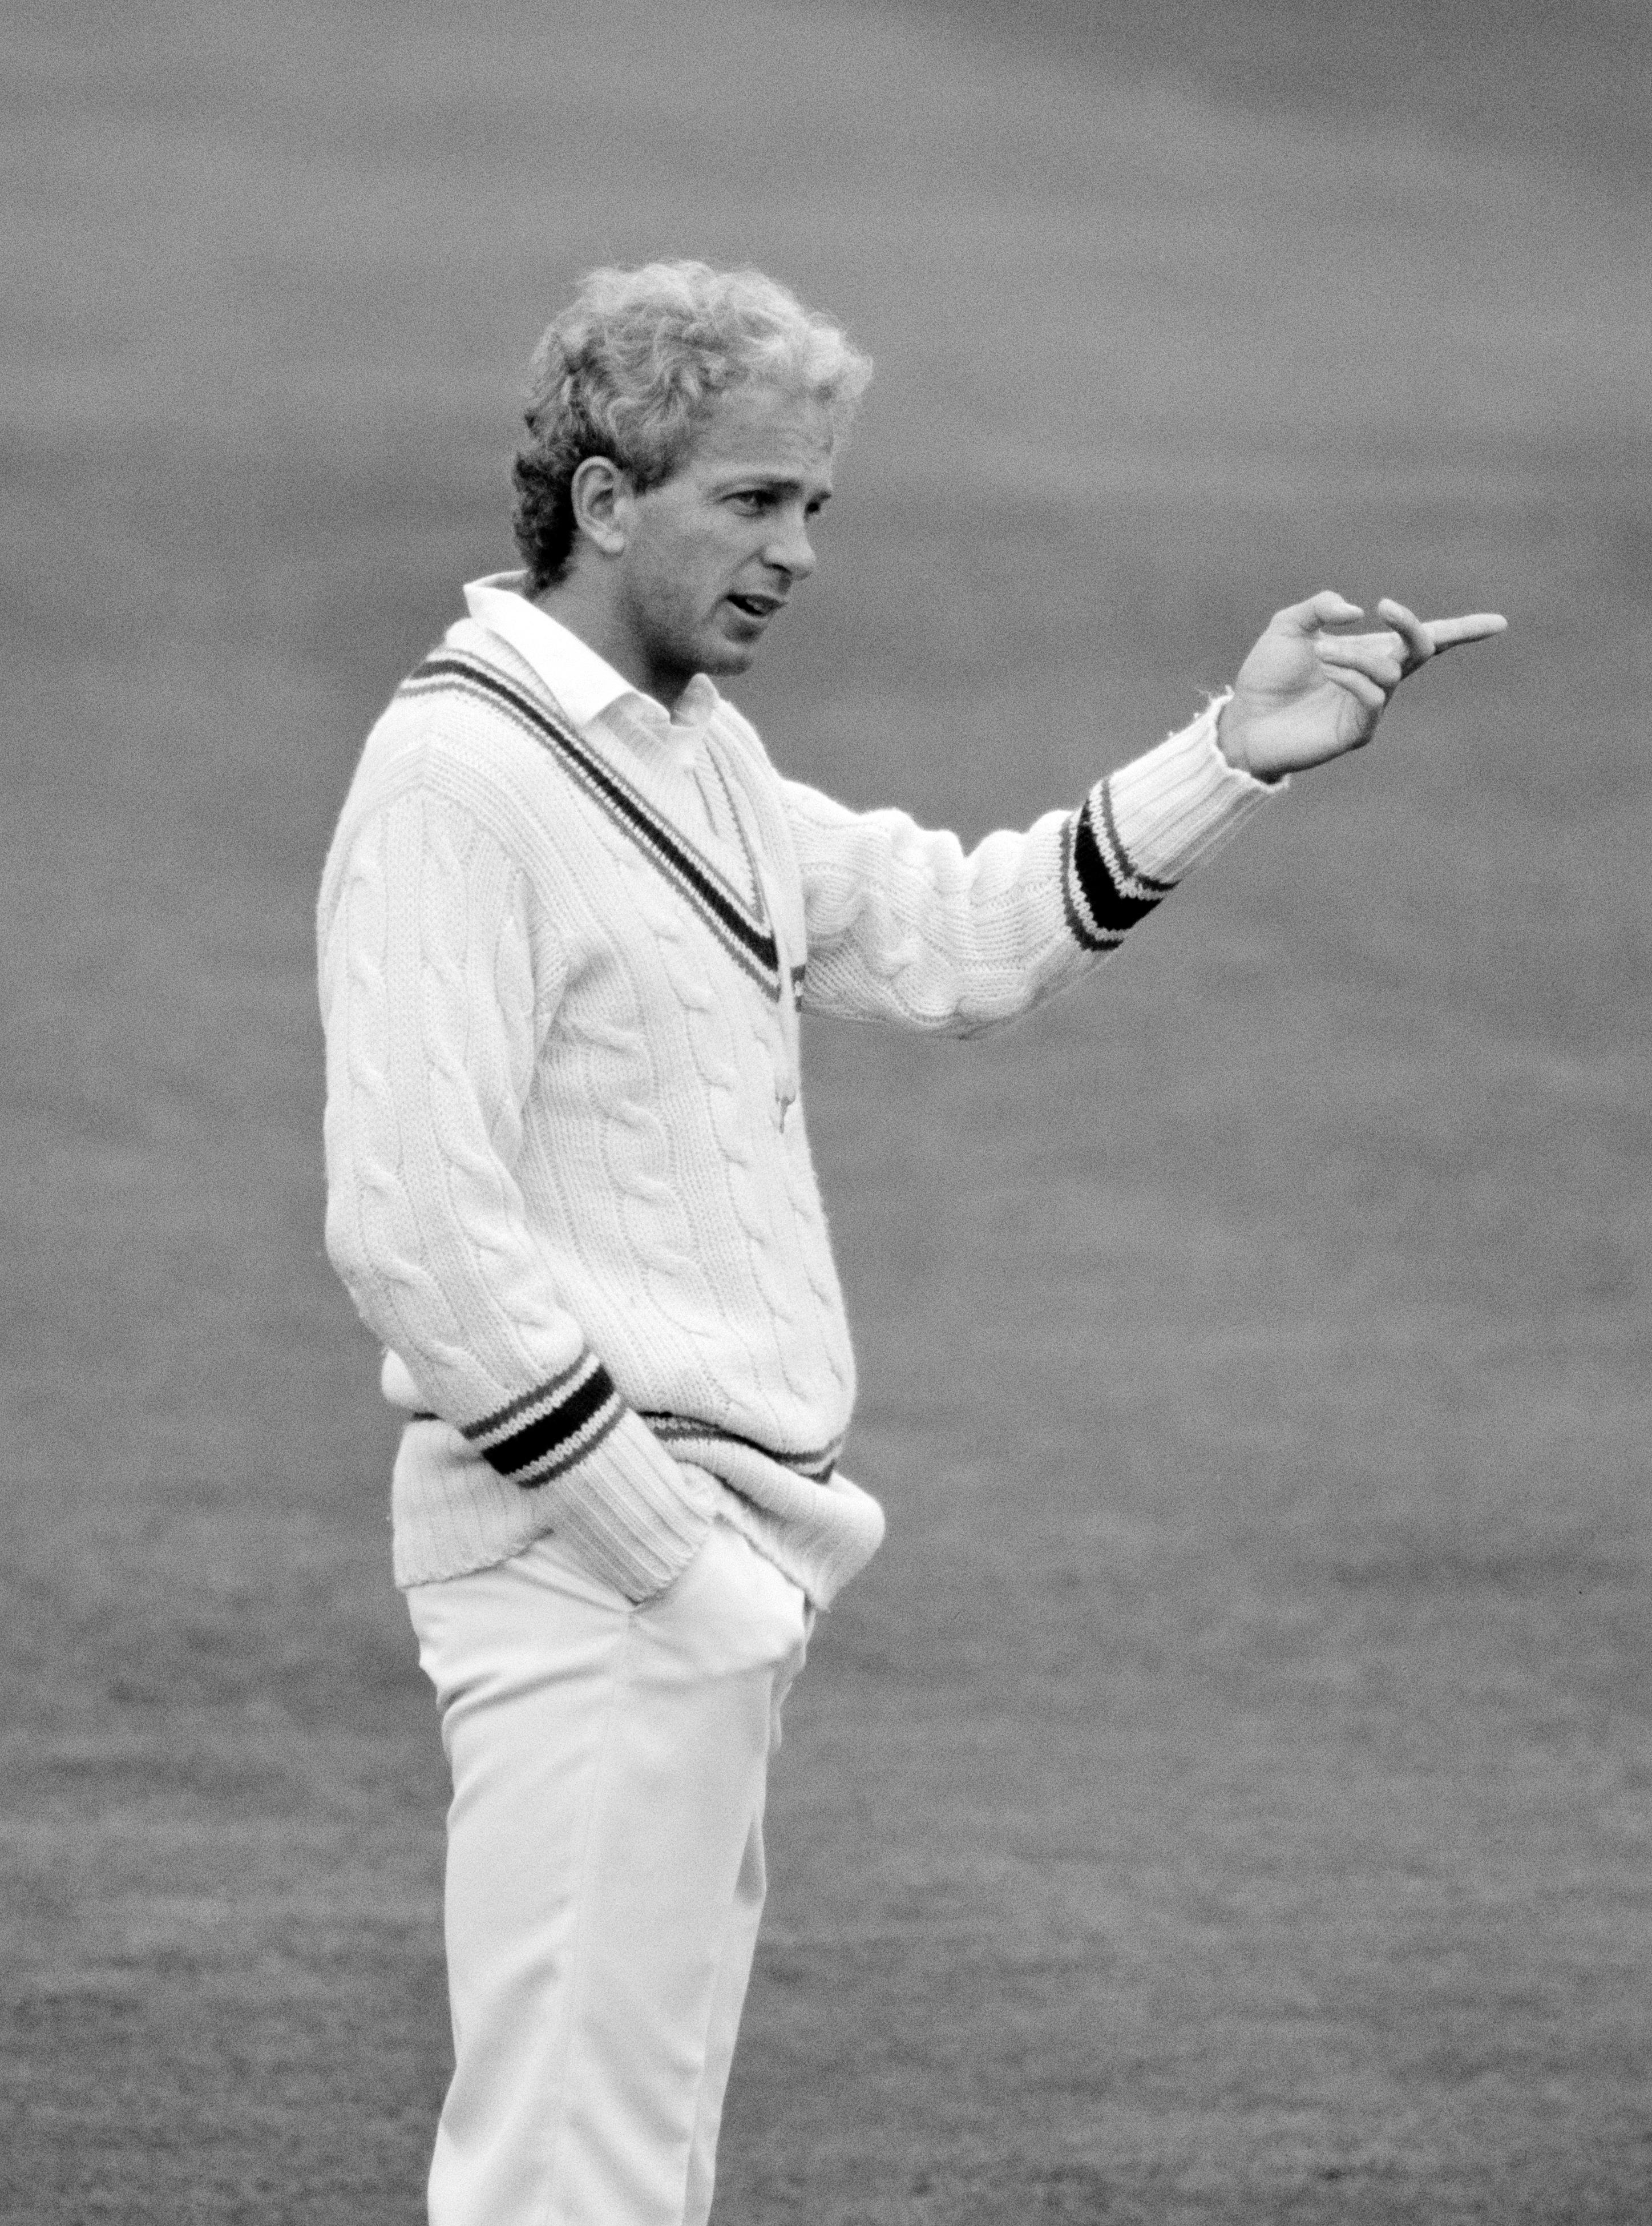 David Gowerwas the first Englishman to be called for chucking in a home Test